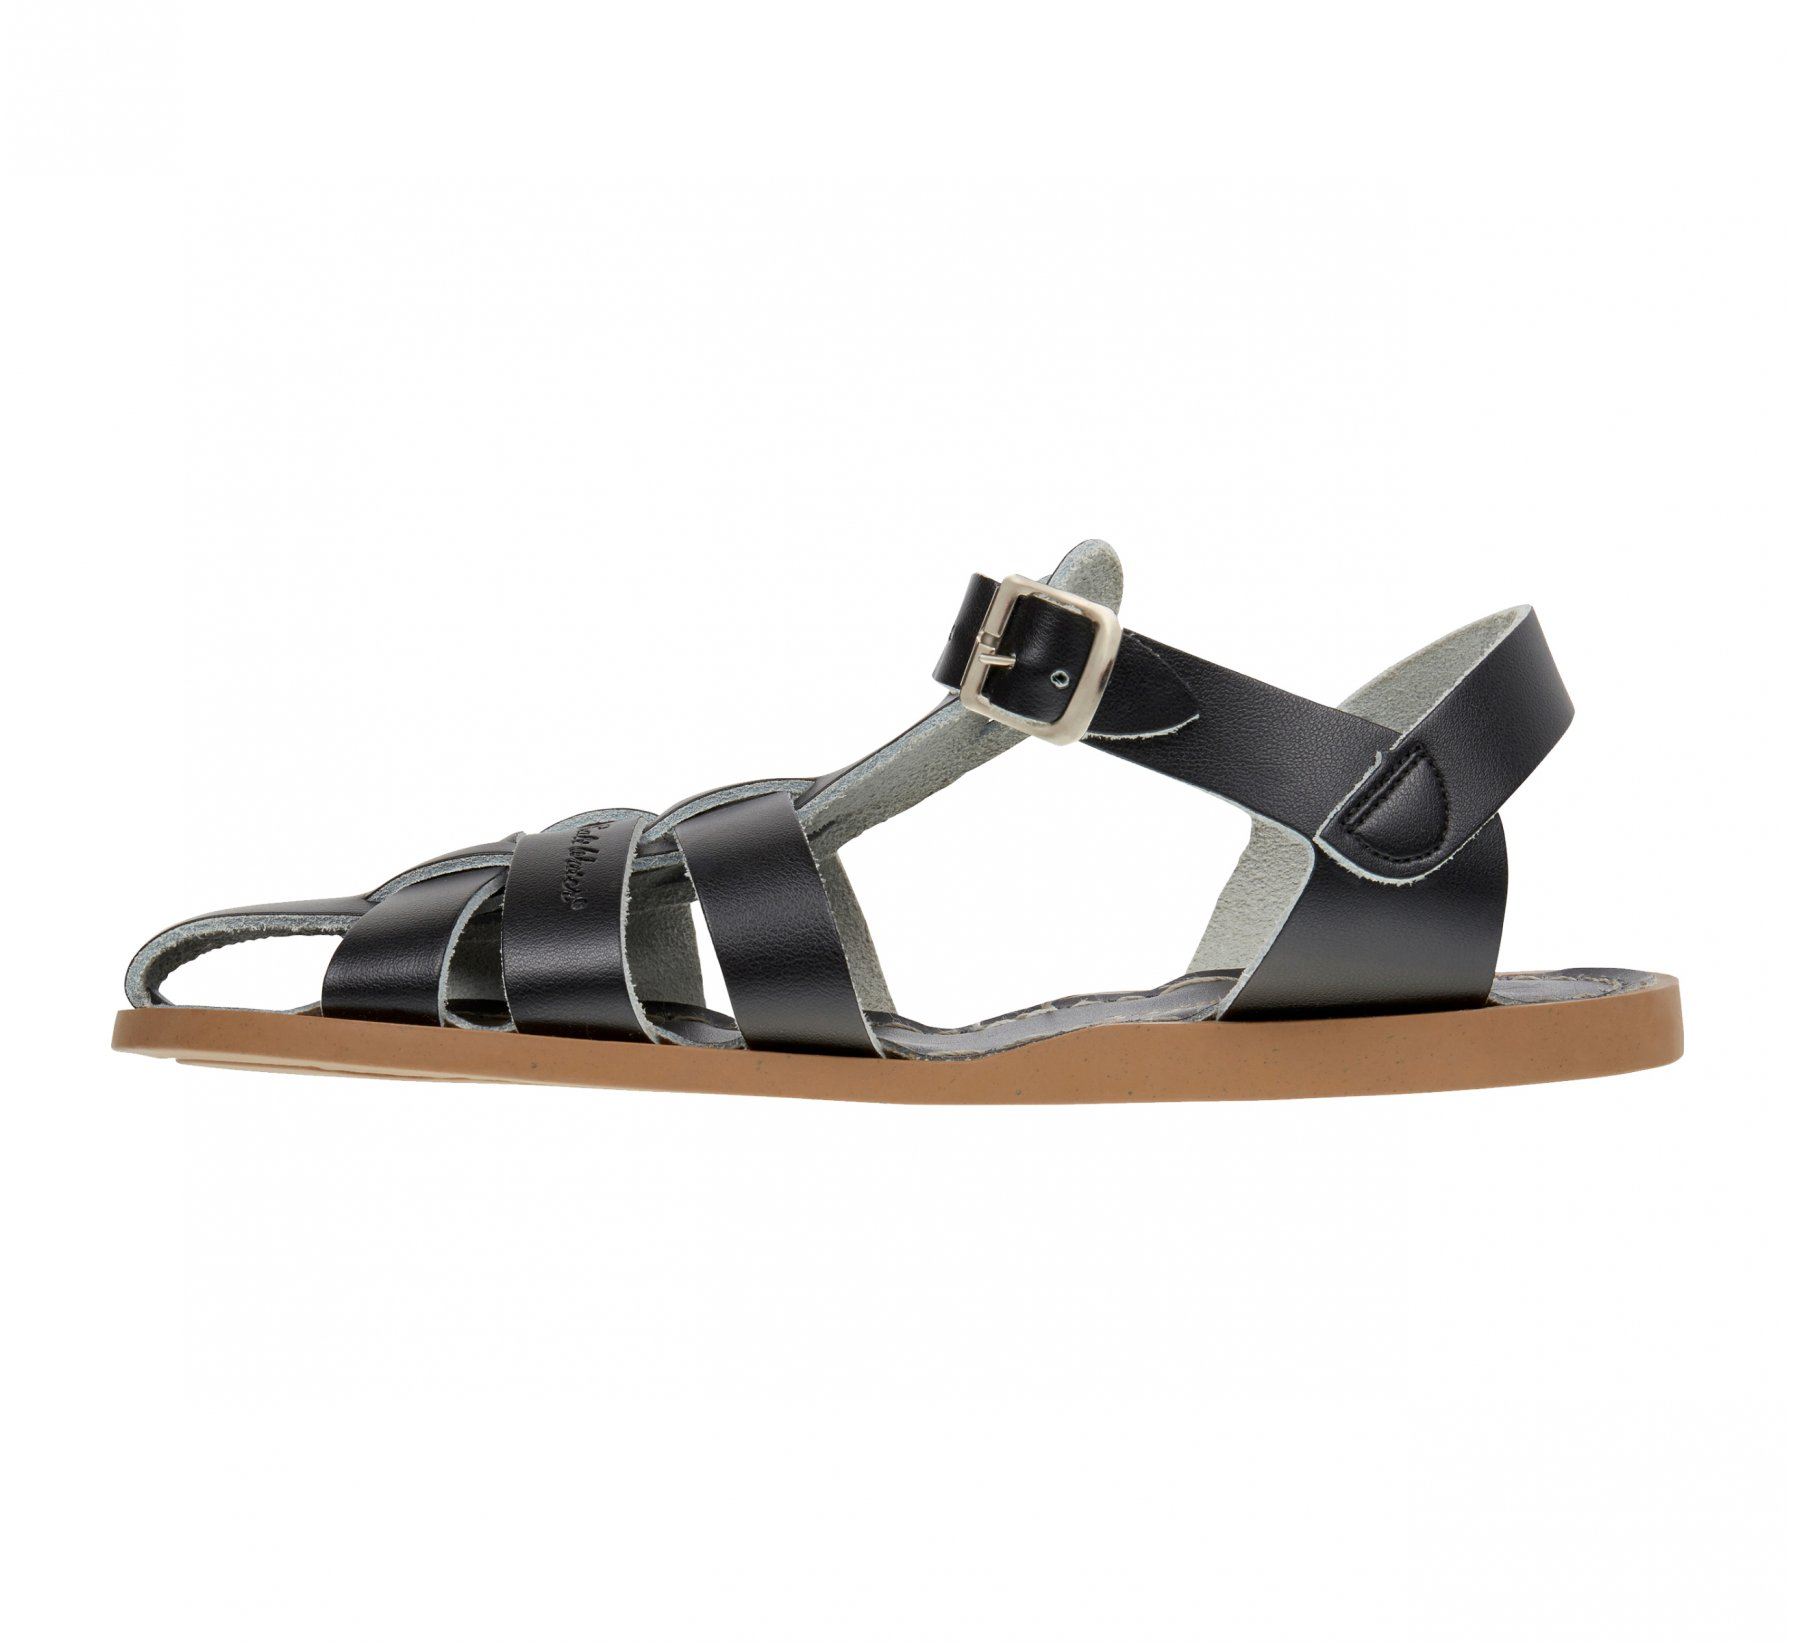 Shark Original Hitam - Salt Water Sandals